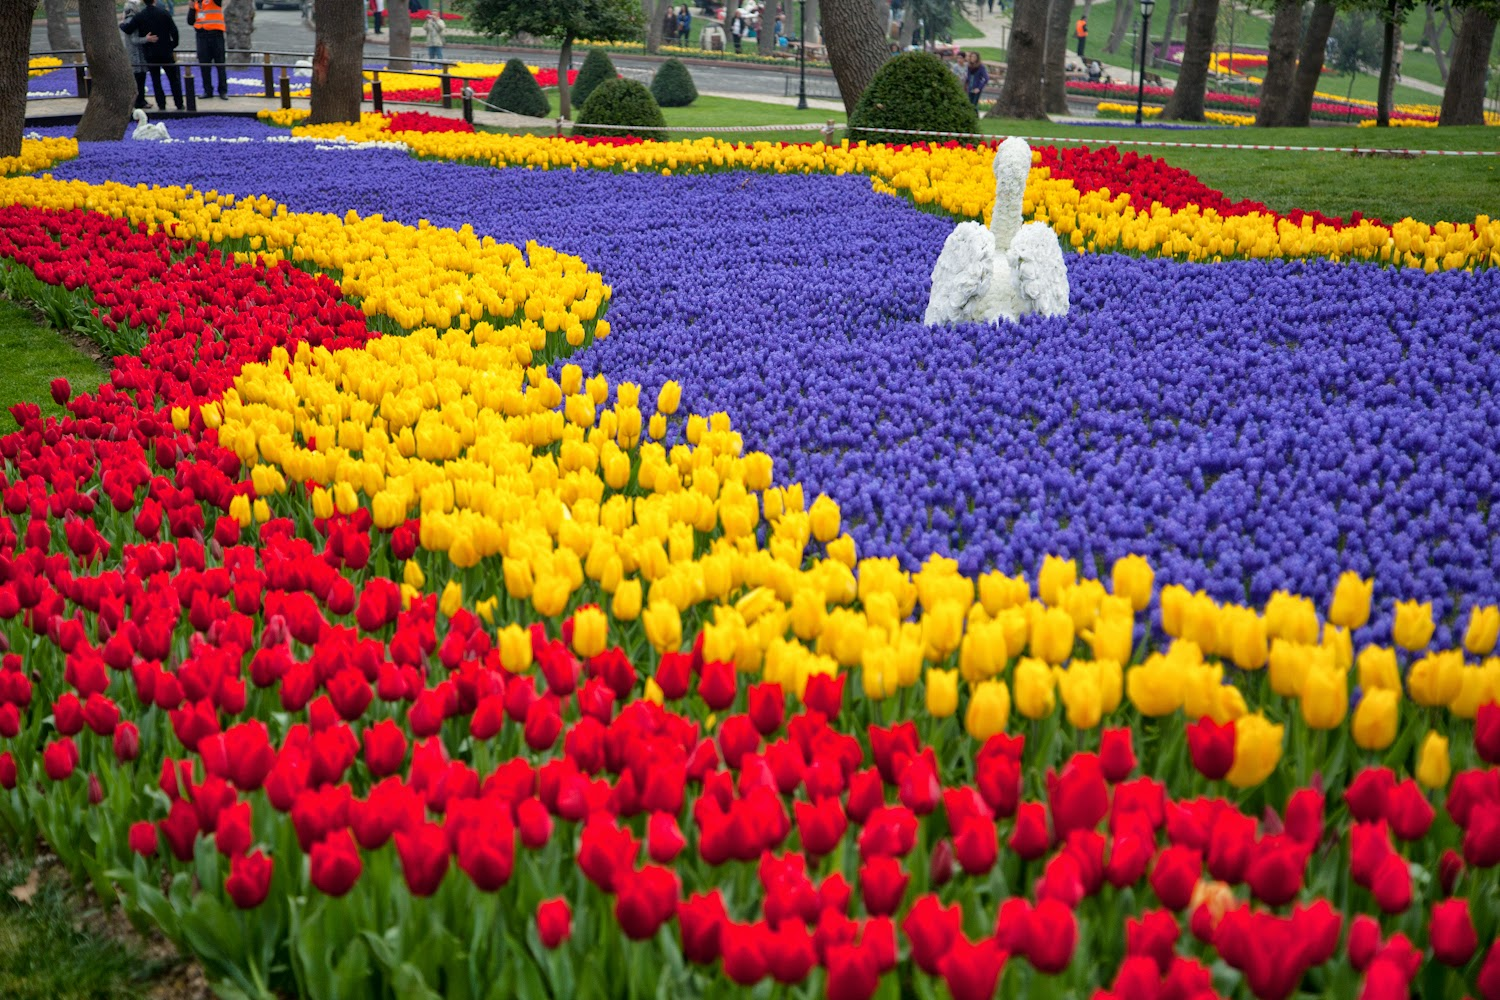 Beauty In Photography Tulip Festival In Emirgan Park